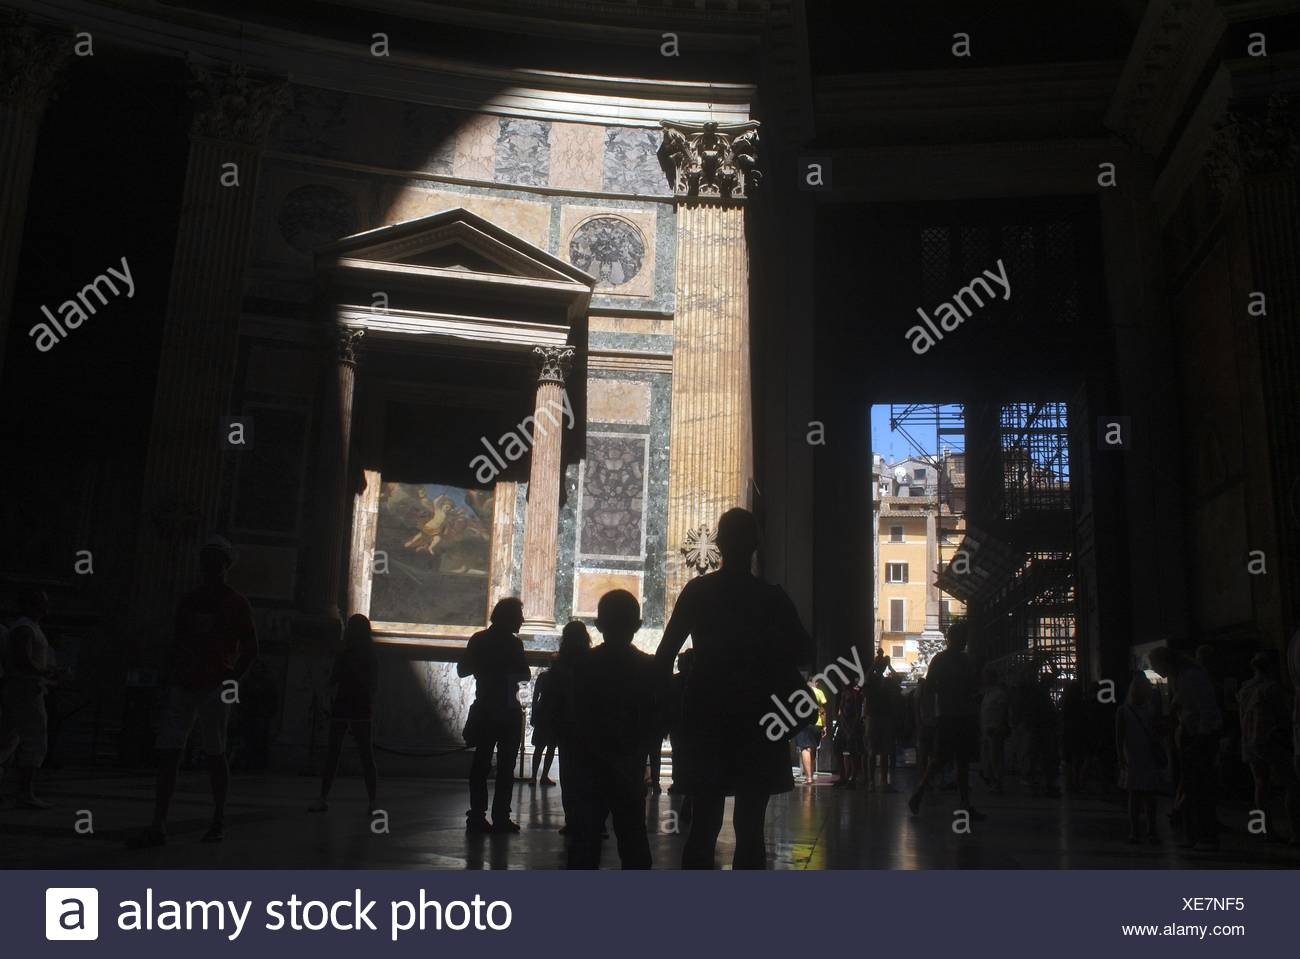 Beam of light in the Pantheon, Rome, Italy - Stock Image